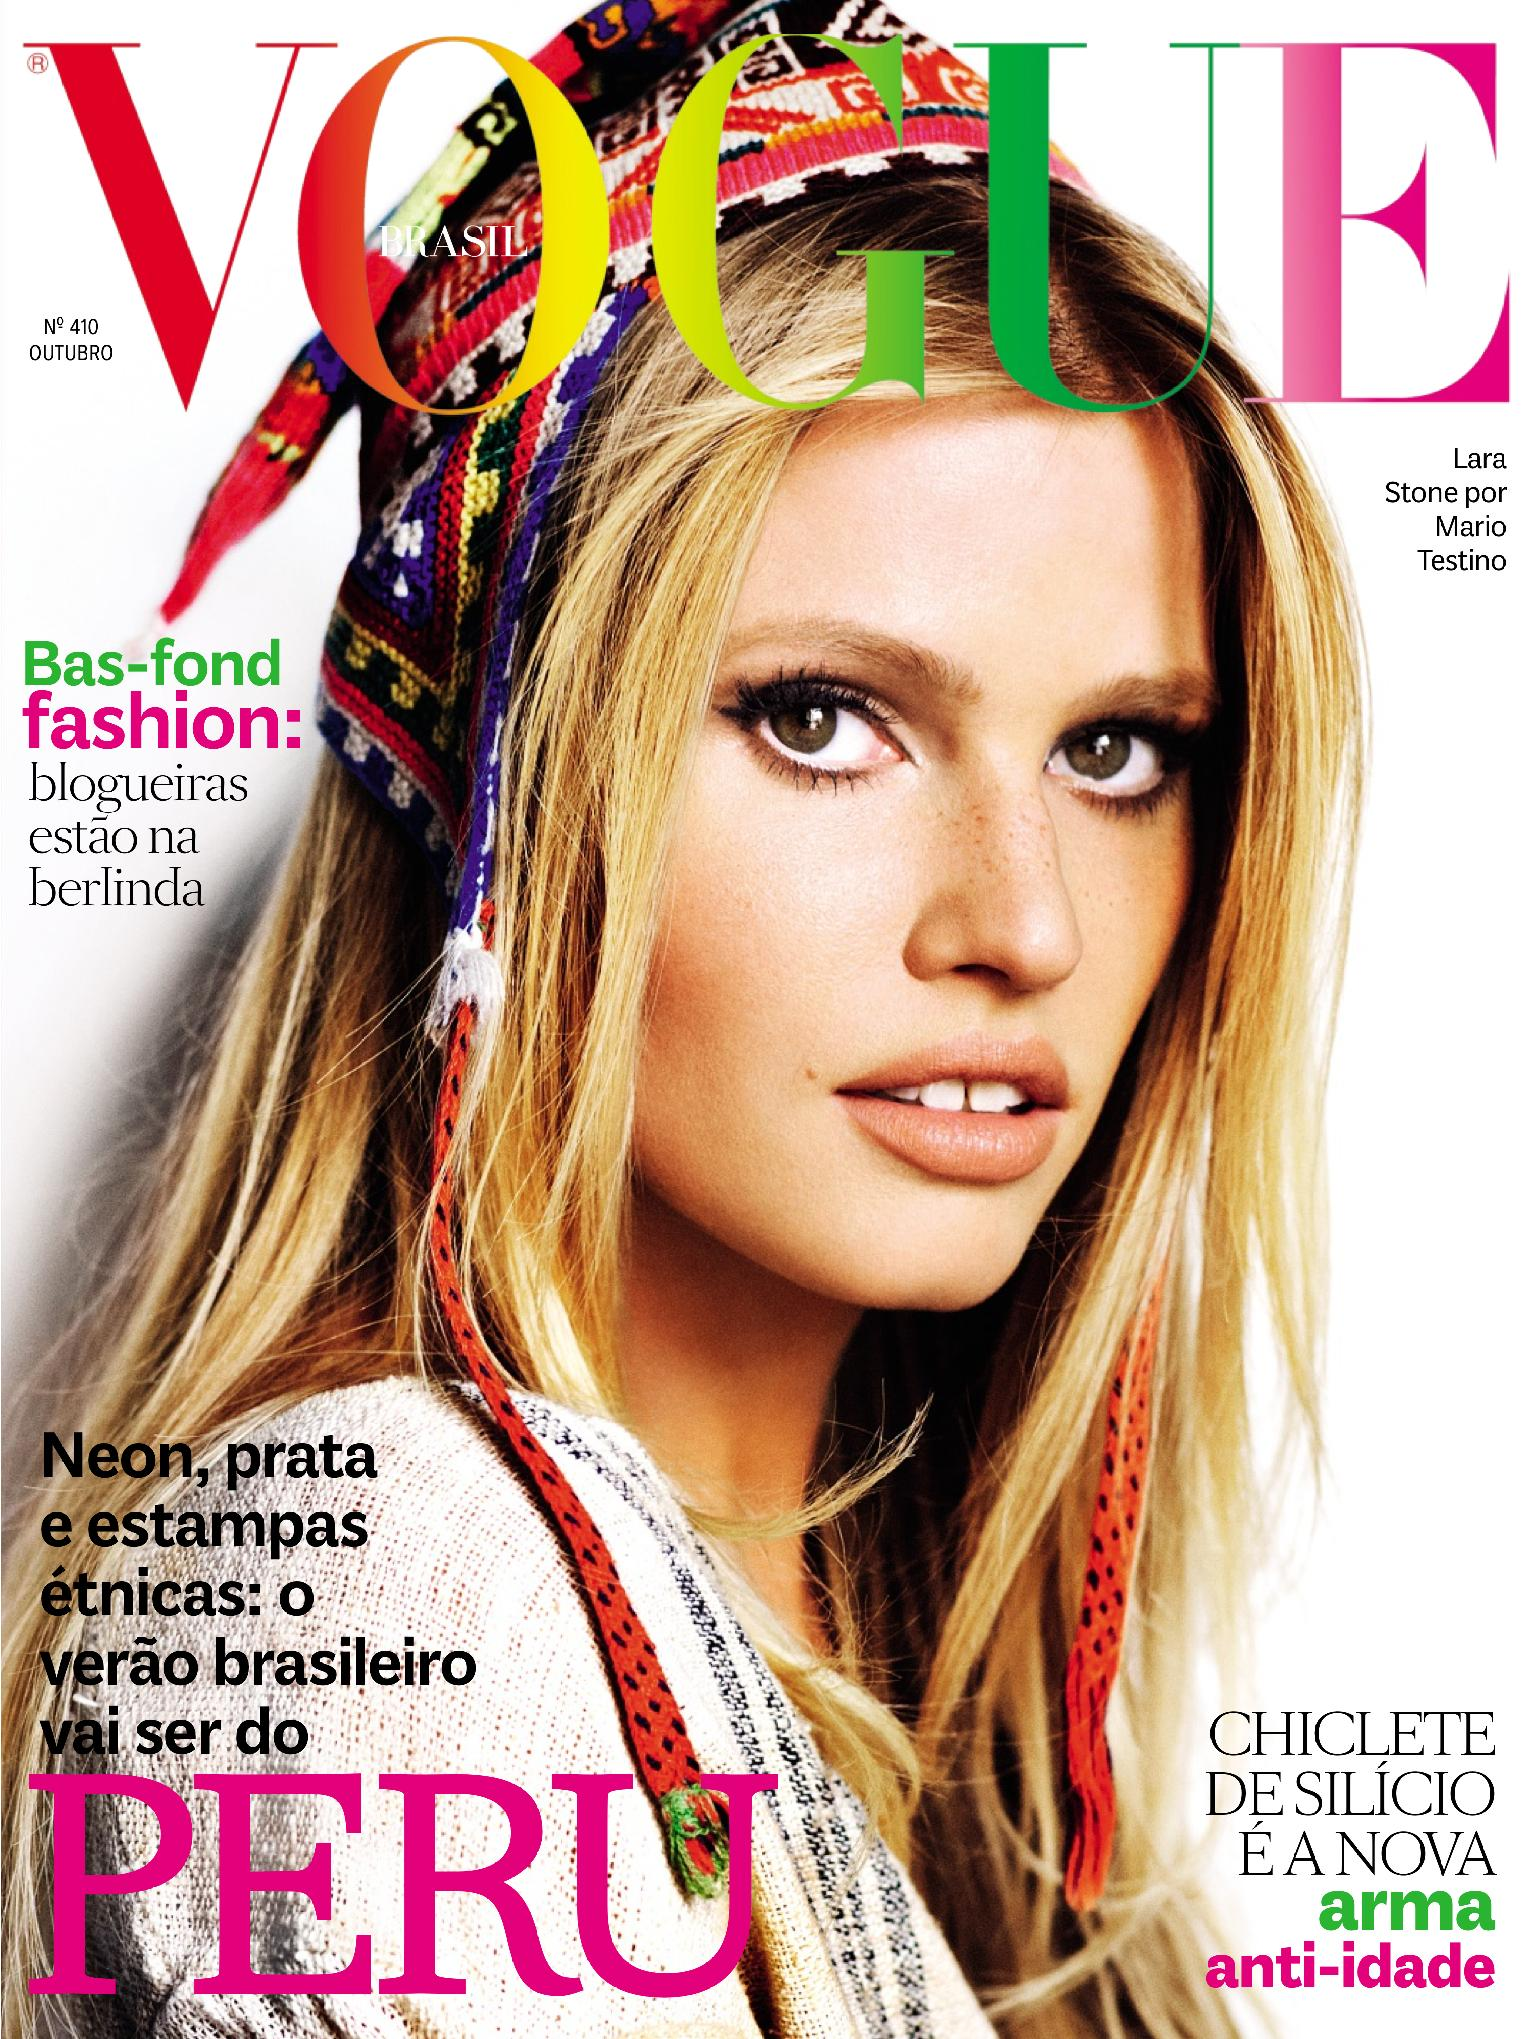 Beautiful Dutch Model Lara Stone Modeling For The Cover Of Vogue Brasil And Vogue Brasil Fashion Editorials Modeling As One Of The Highest Paid Models In The World.